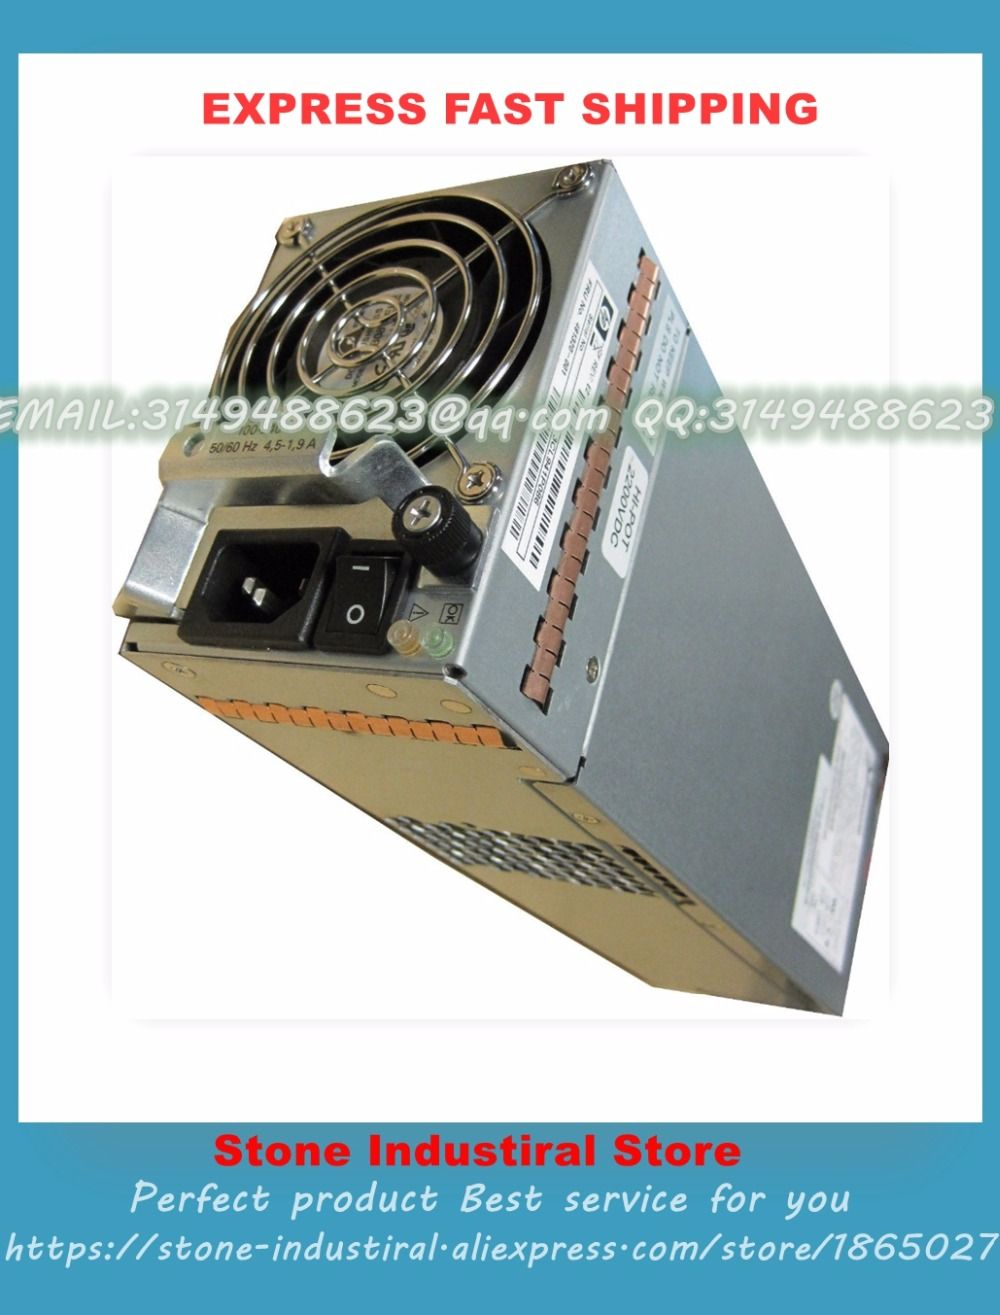 Pin On Electrical Equipment Supplies